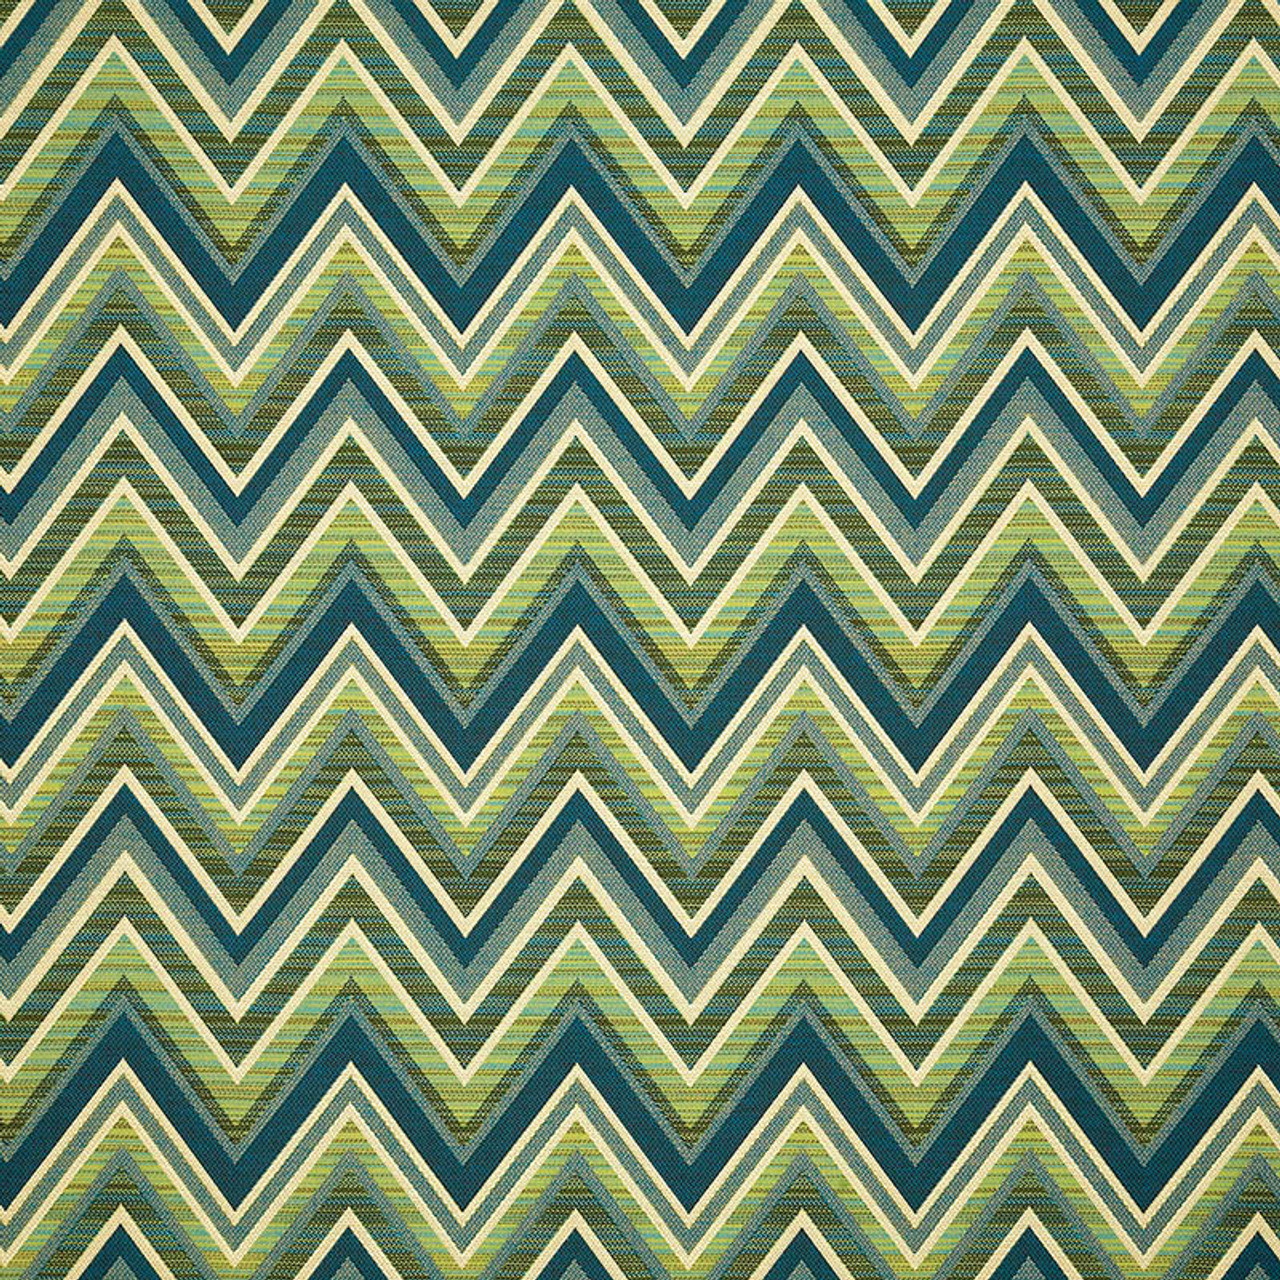 Sunbrella® Indoor Gateway Tropic 56101-0000 Outdoor Upholstery Fabric